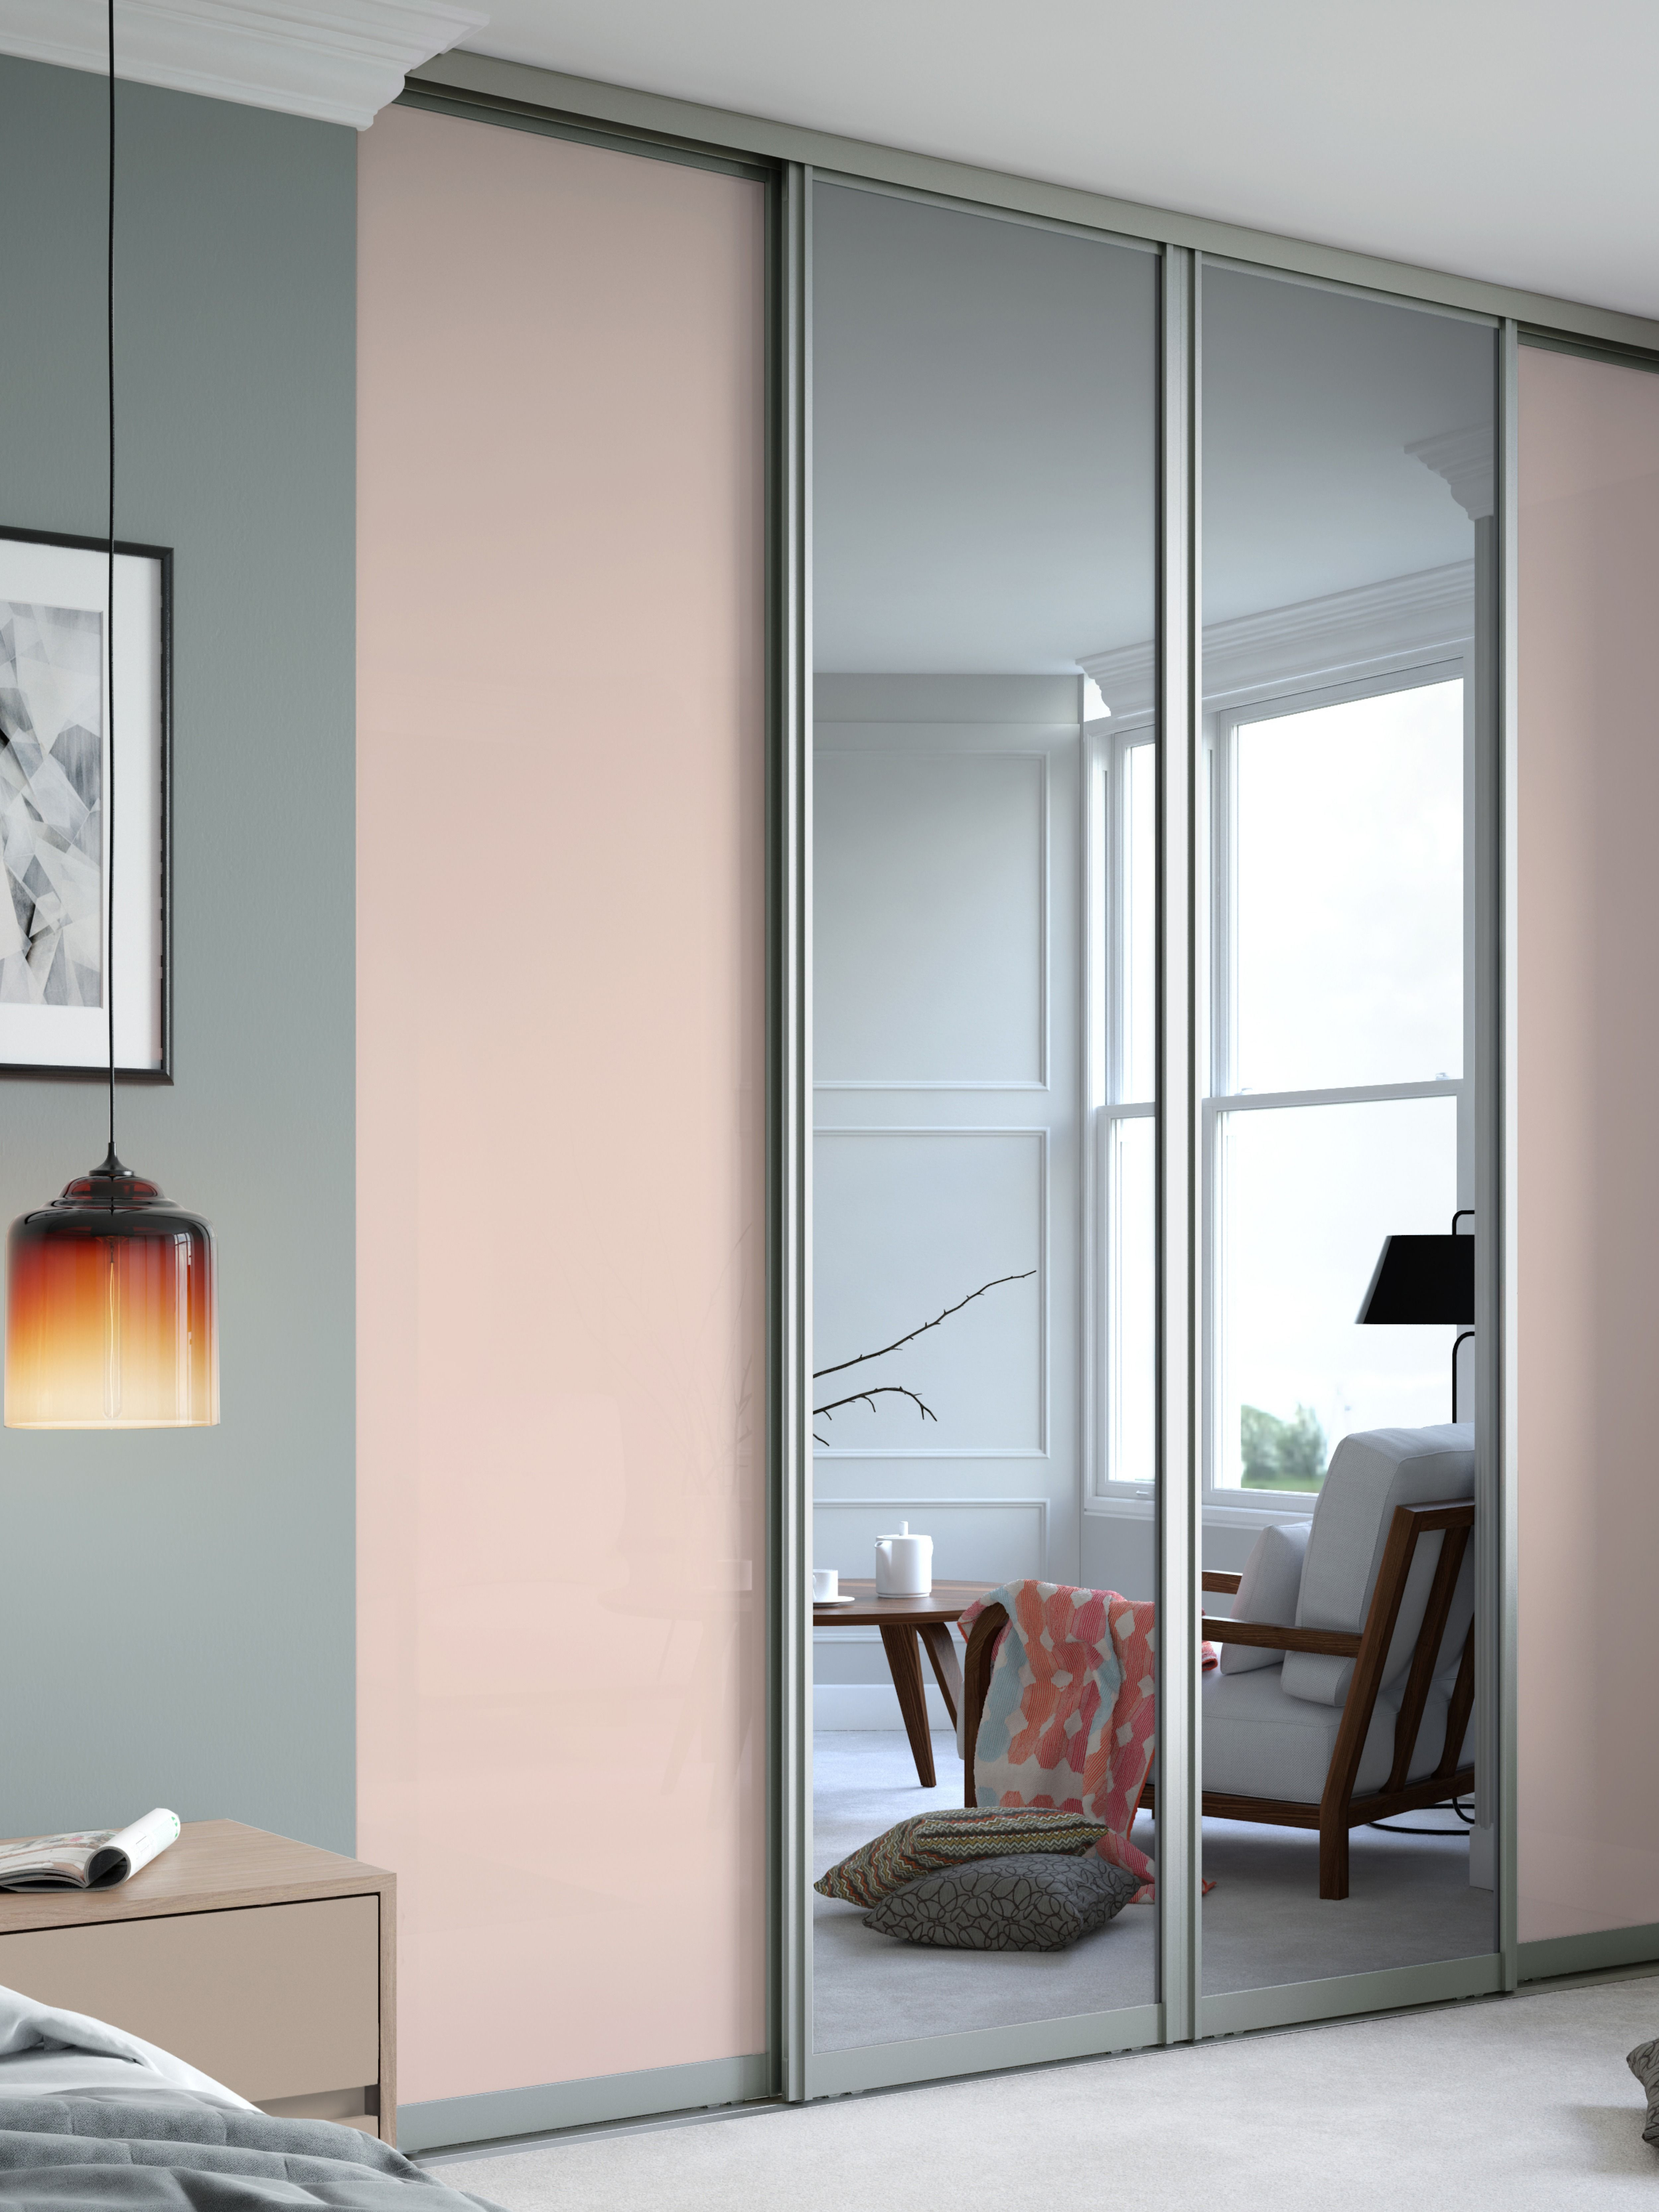 Shown Here Are Our Signature Sliding Wardrobe Doors In Mirror And